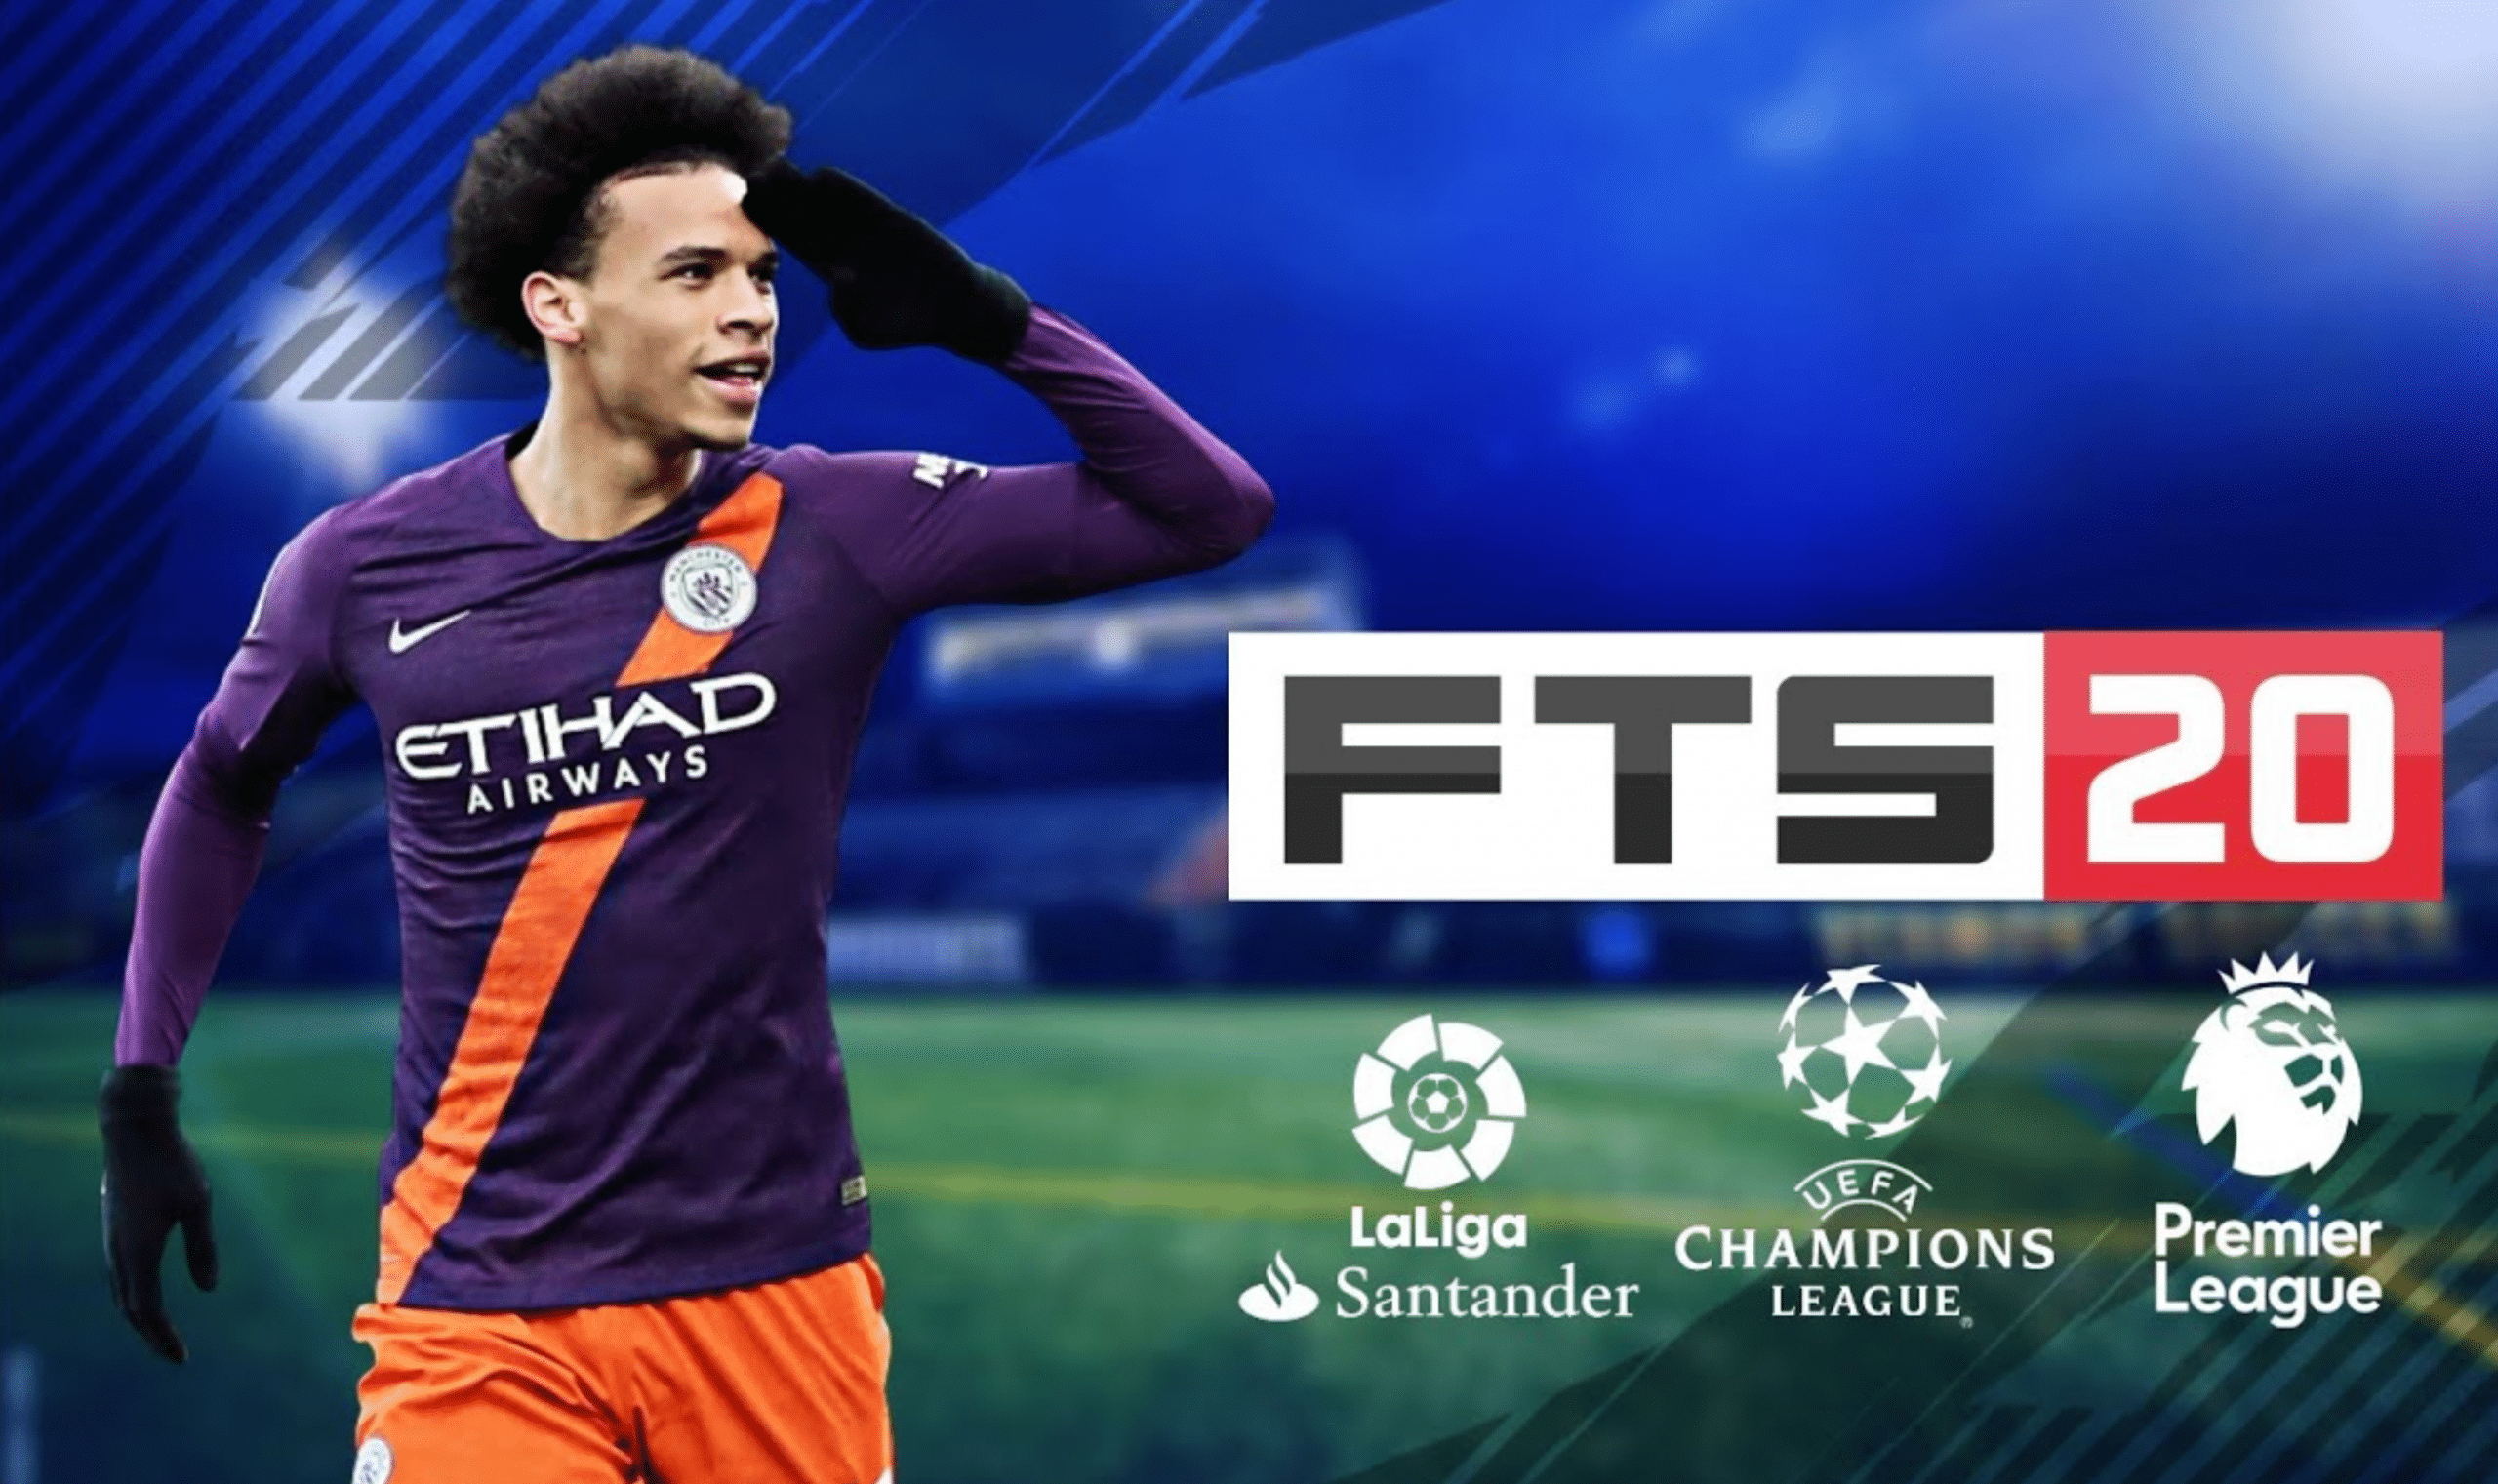 fts 20 first touch soccer 2020 download data and obb fts 20 first touch soccer 2020